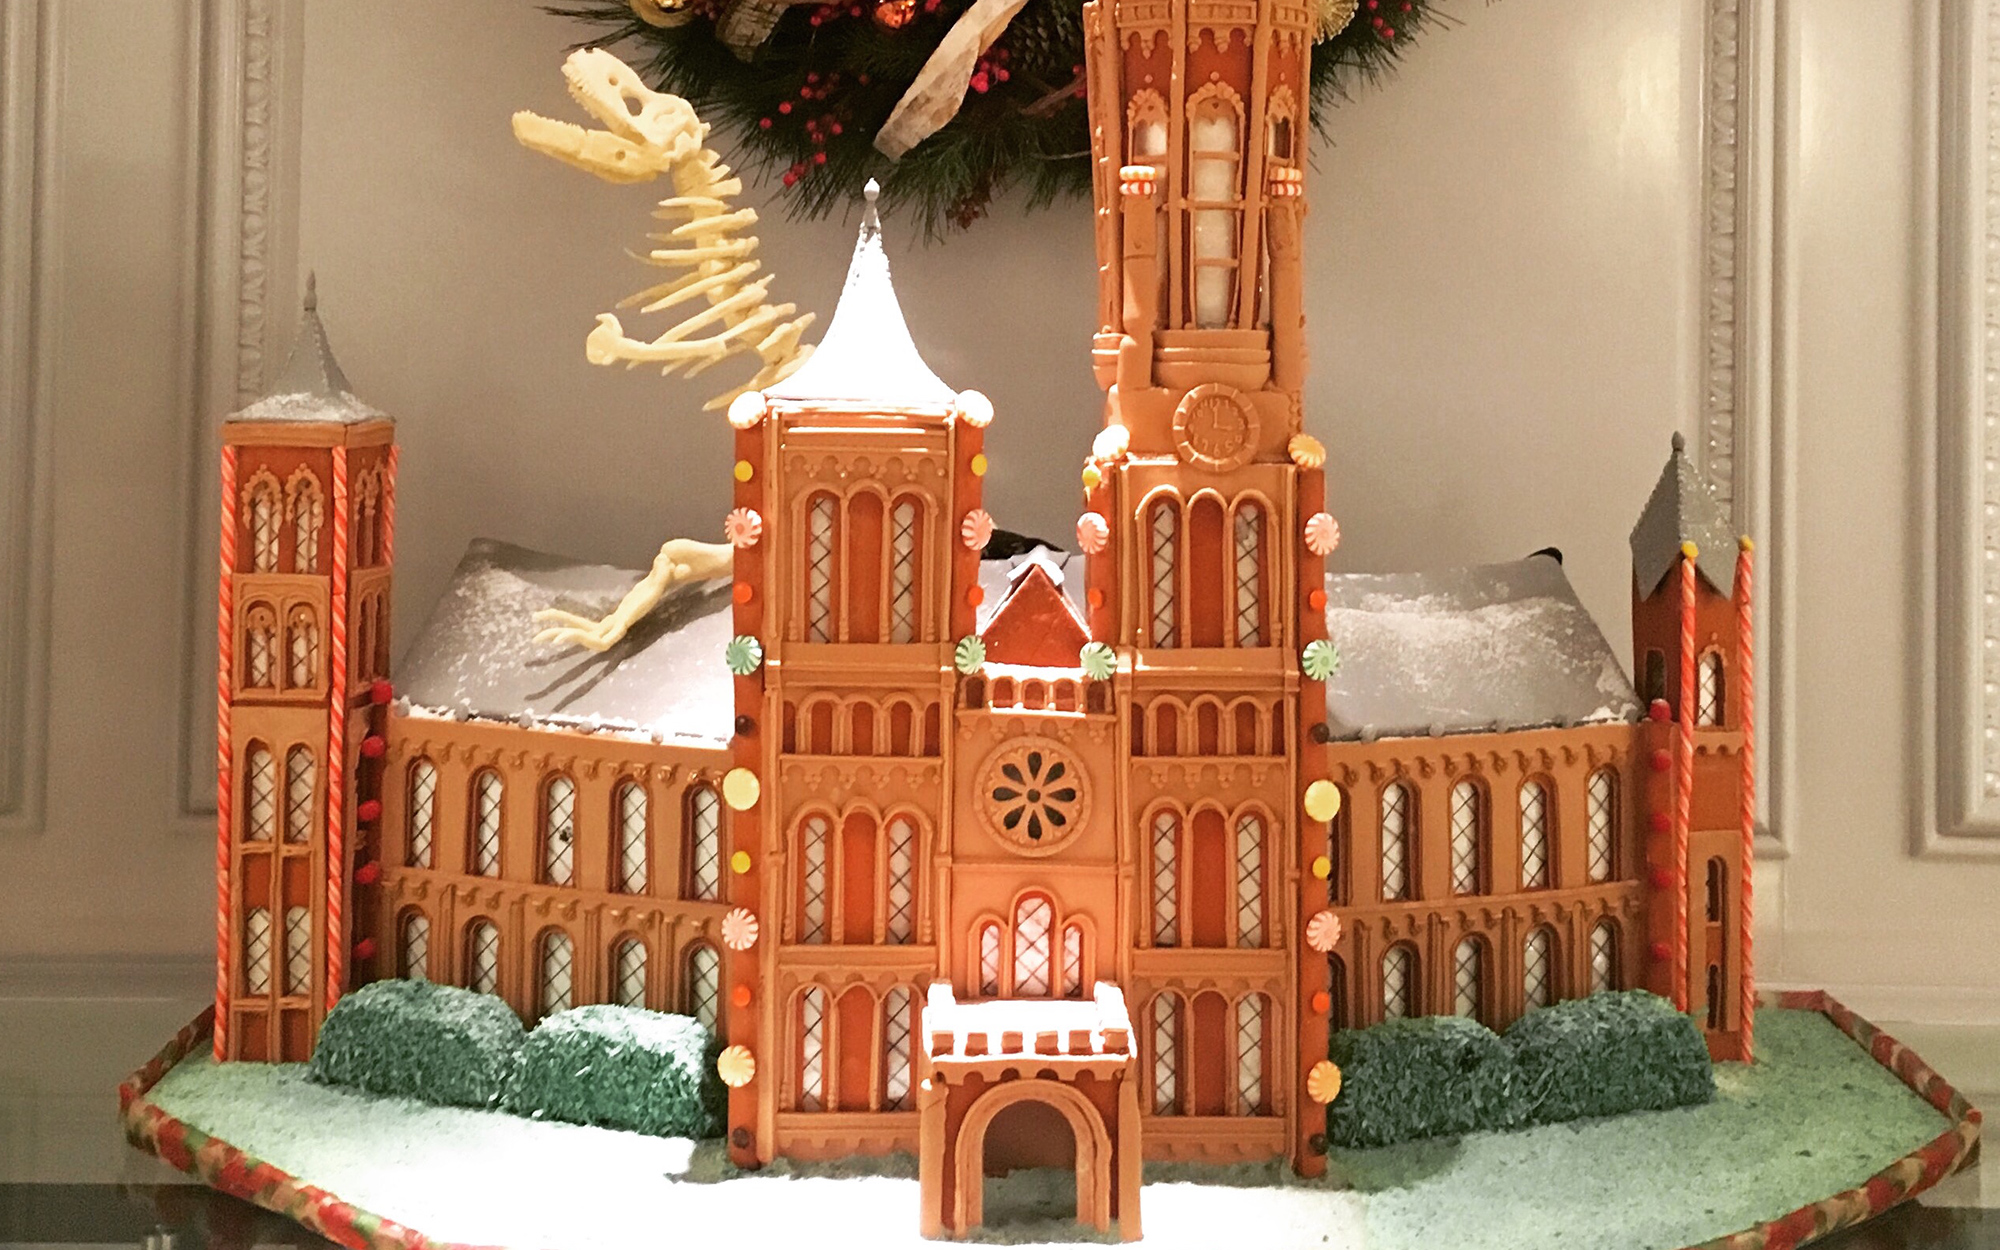 The Best Hotel Gingerbread Houses: The Ritz-Carlton, Washington, D.C.